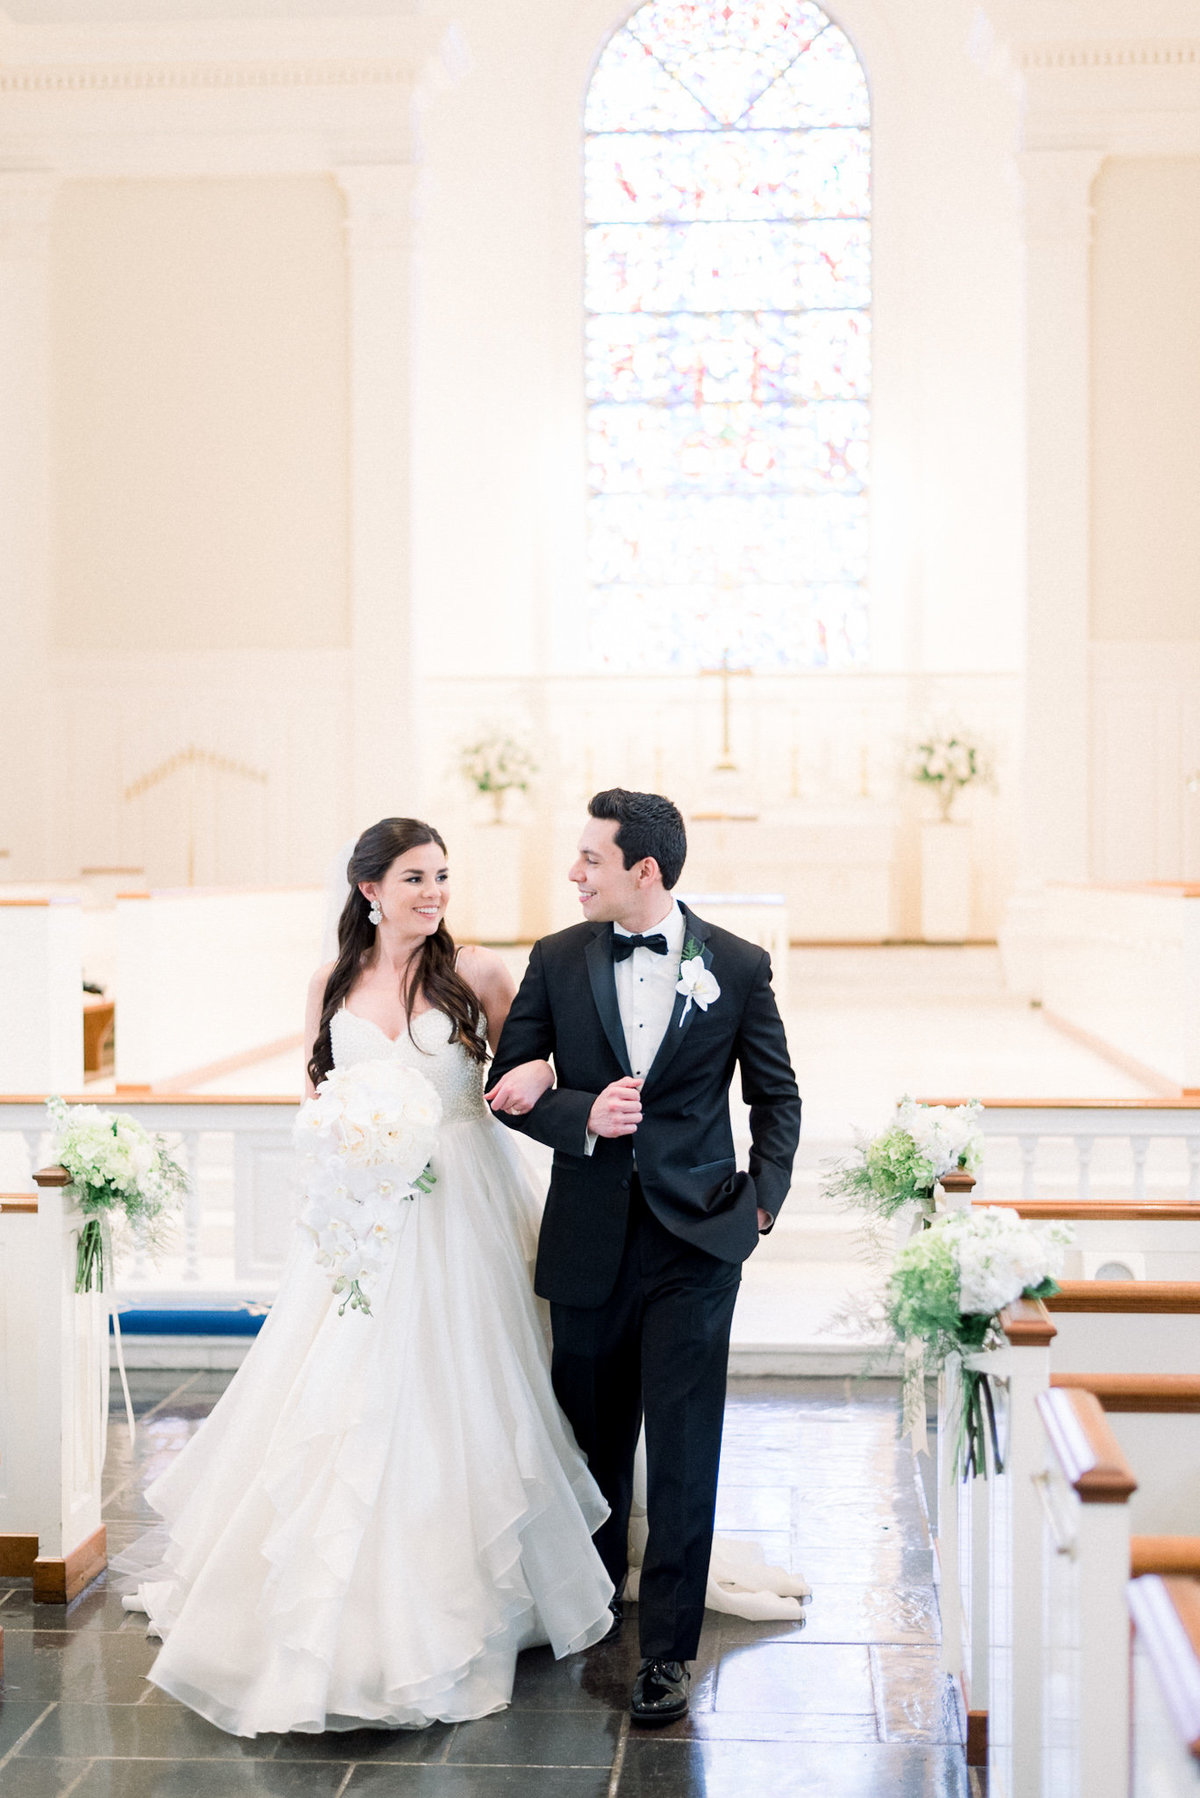 Canterbury Methodist Birmingham Museum of Art - Alabama Wedding Photographer11